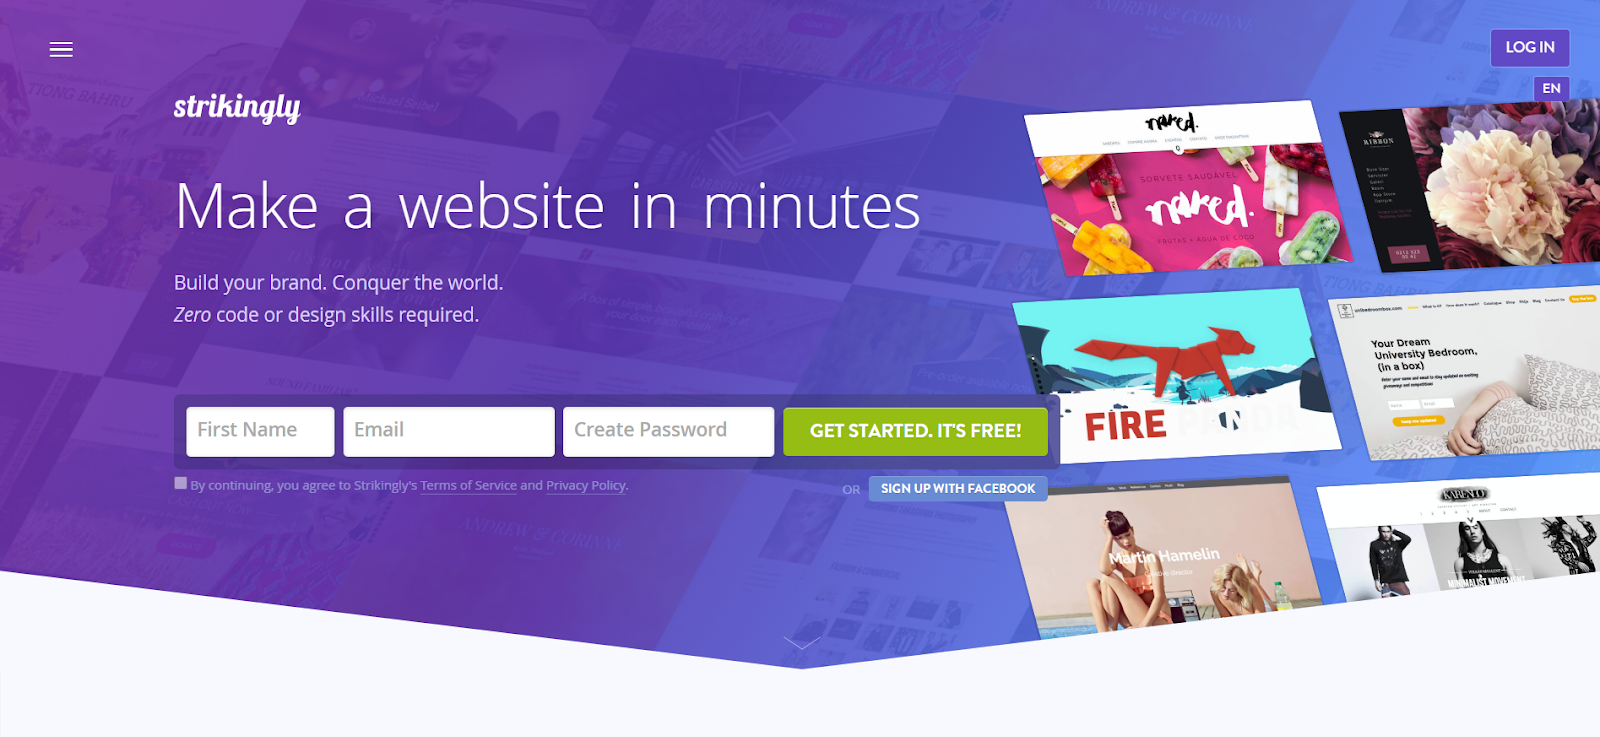 10 Best Website Builders - Free and Paid